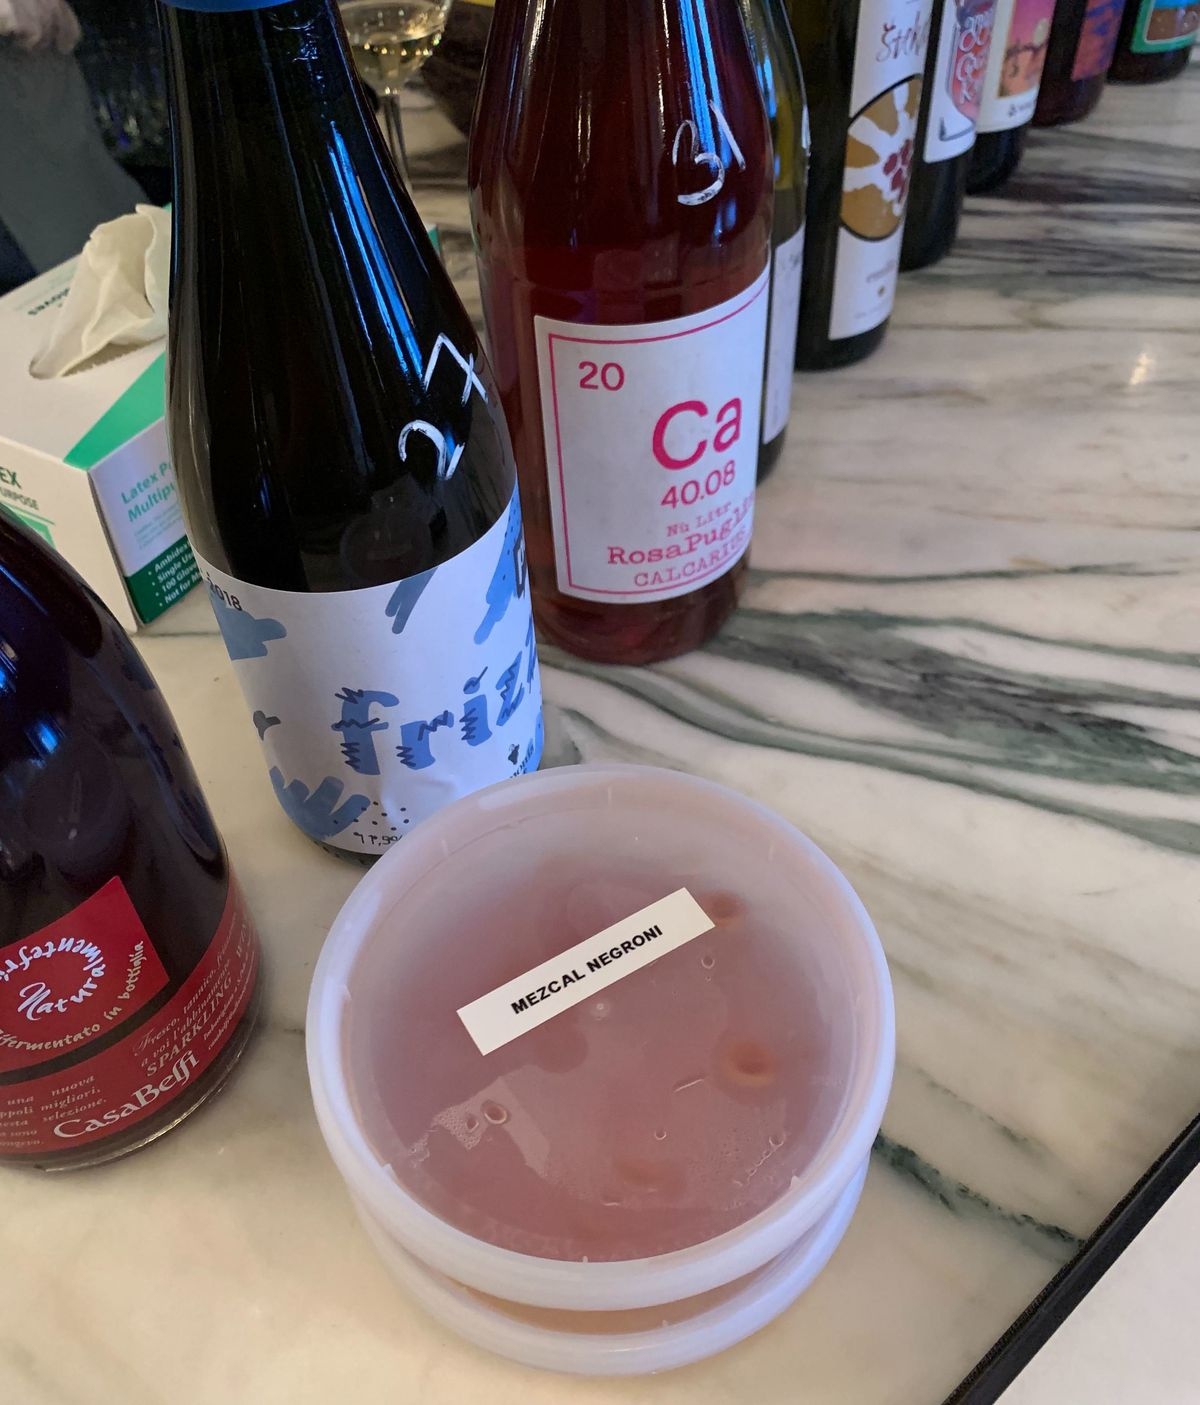 """In the foreground, a plastic to-go container with a printed label """"Mezcal Negroni"""" sits on a marble countertop. Behind it, bottles of wine are lined up for sale."""